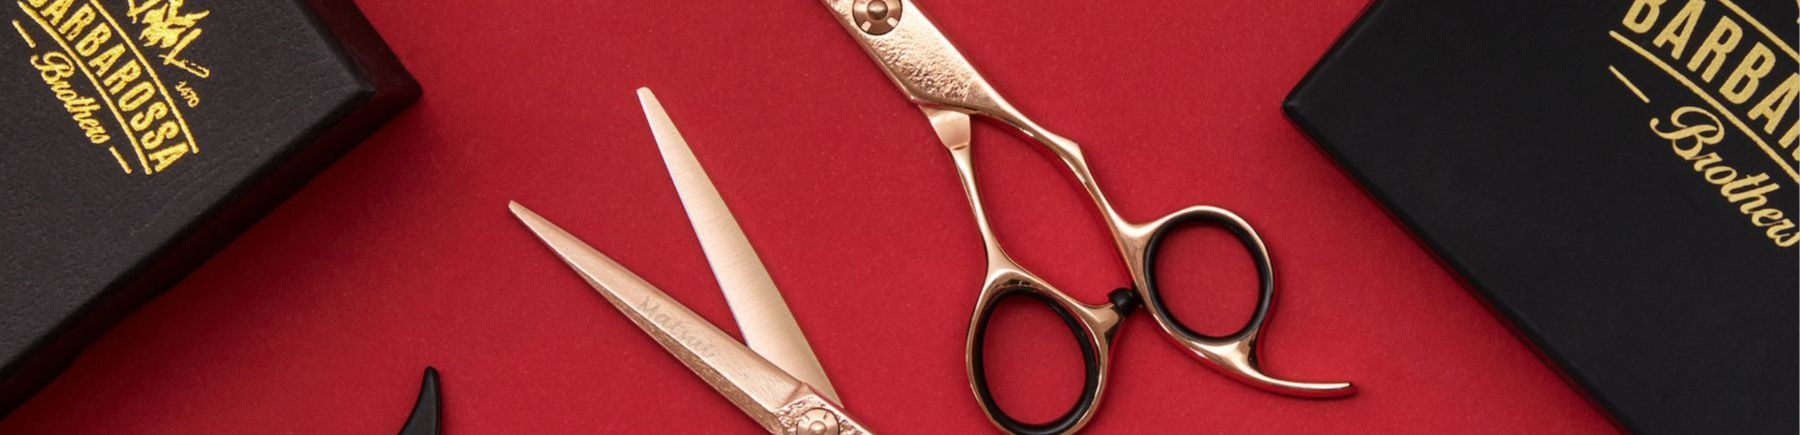 Discount Professional Barber Shears.